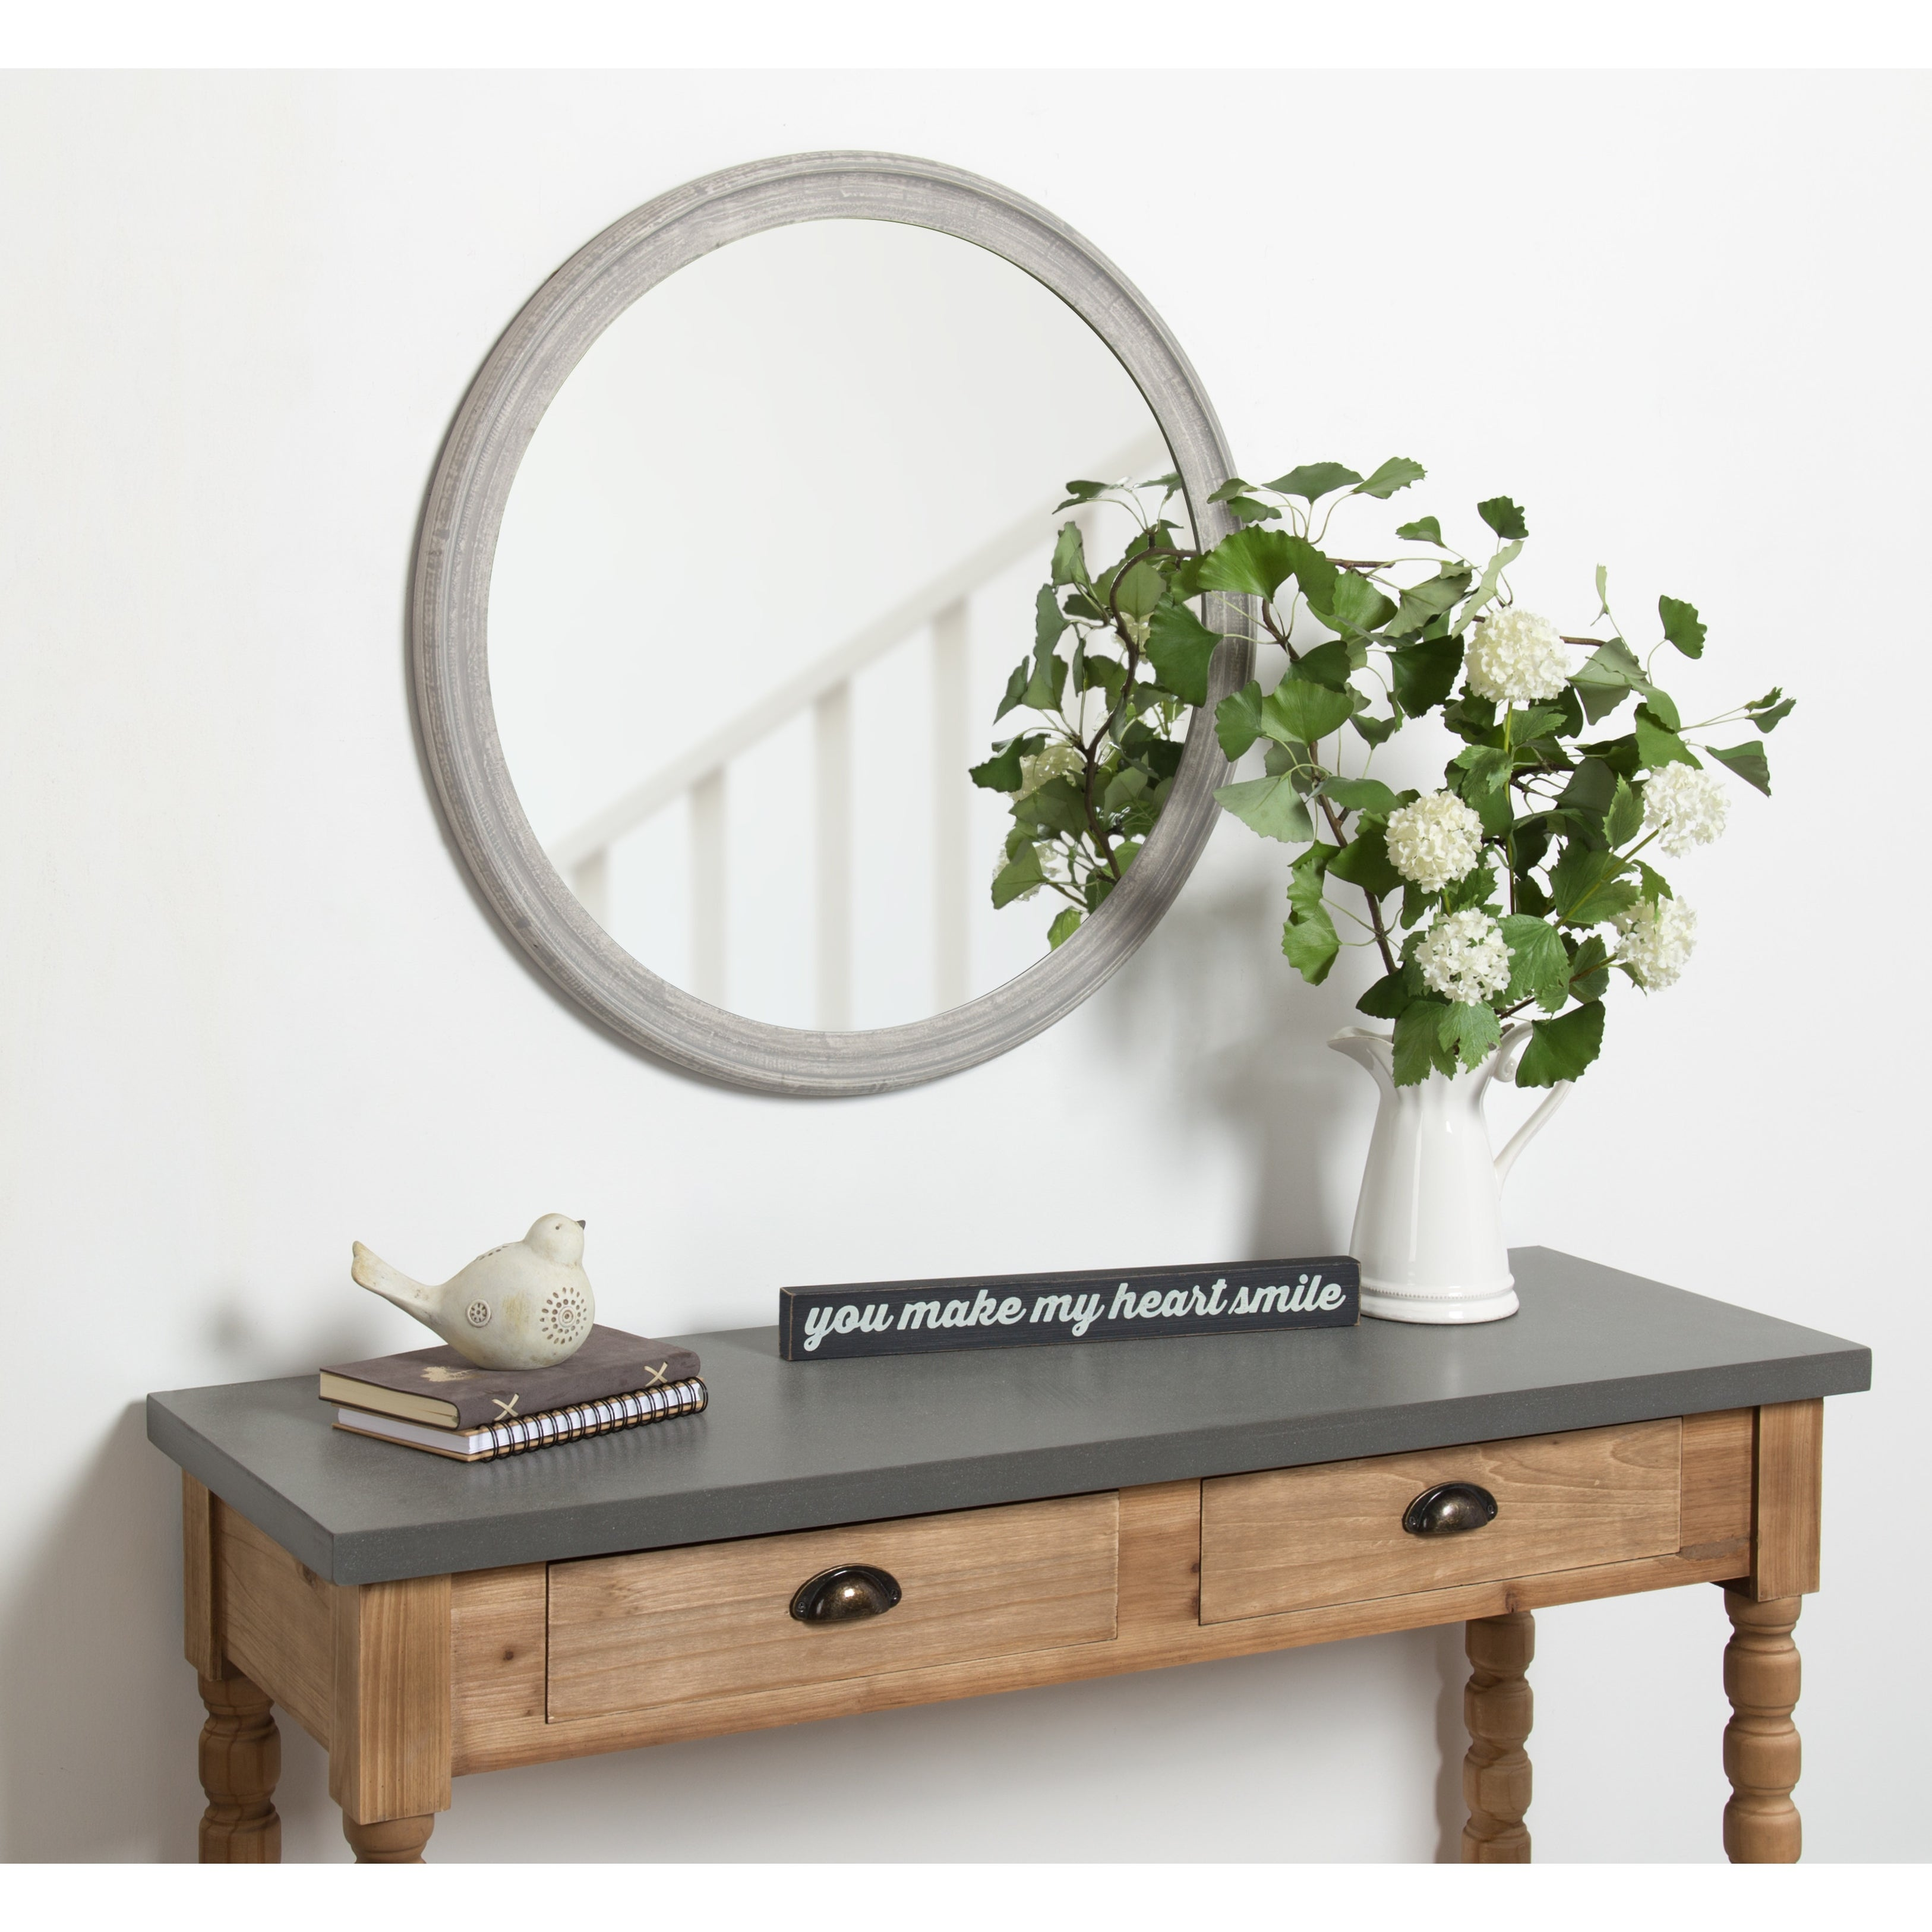 Shop Kate And Laurel Mansell Wood Framed Wall Mirror 28 Diameter Overstock 21497575